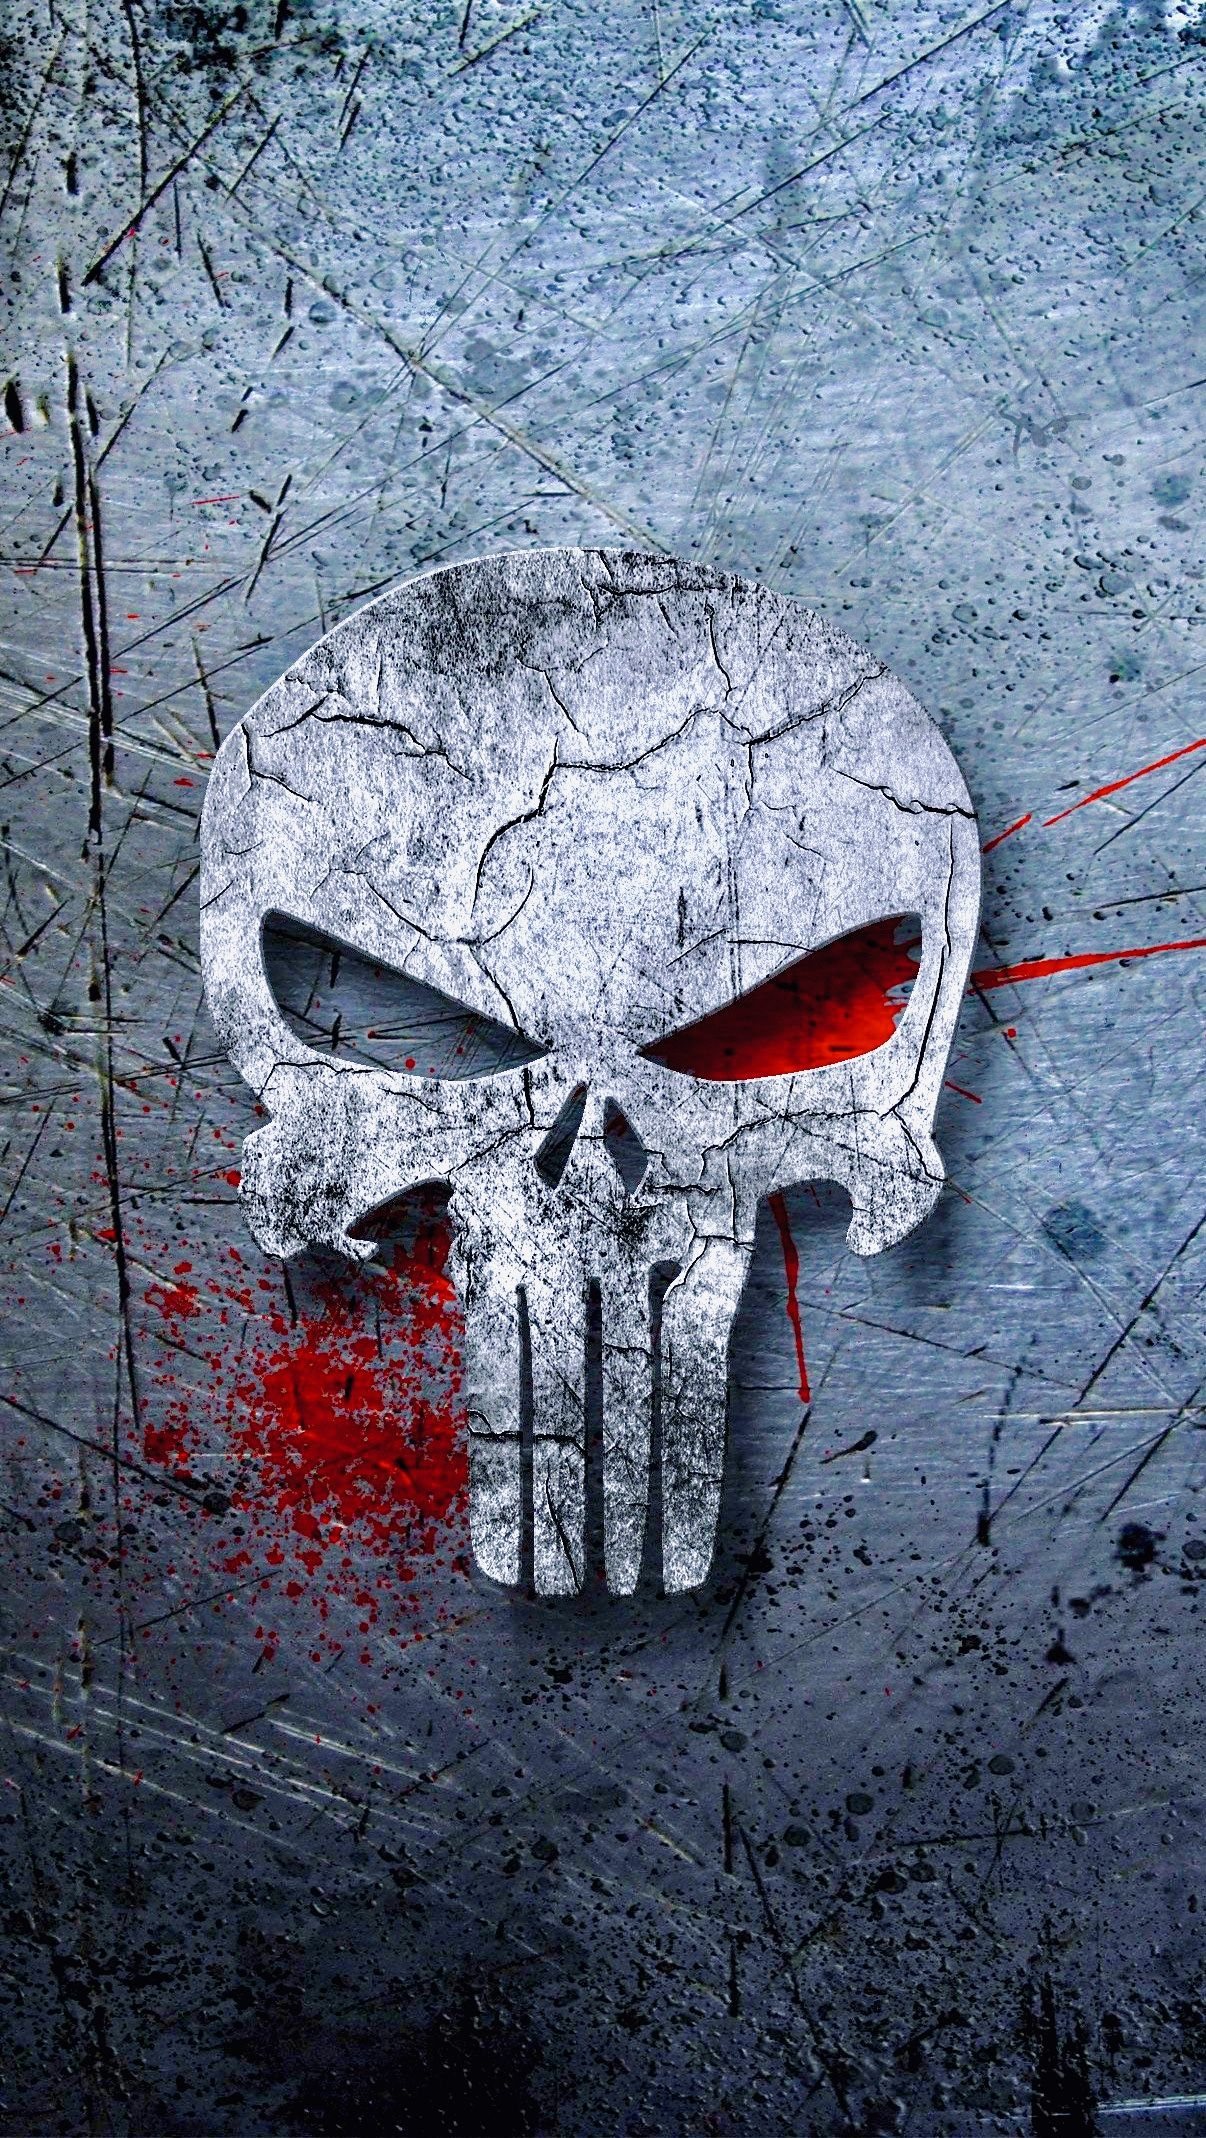 Pin By Ilay Md On Justice In All Cause Punisher Artwork Punisher Logo Superhero Wallpaper